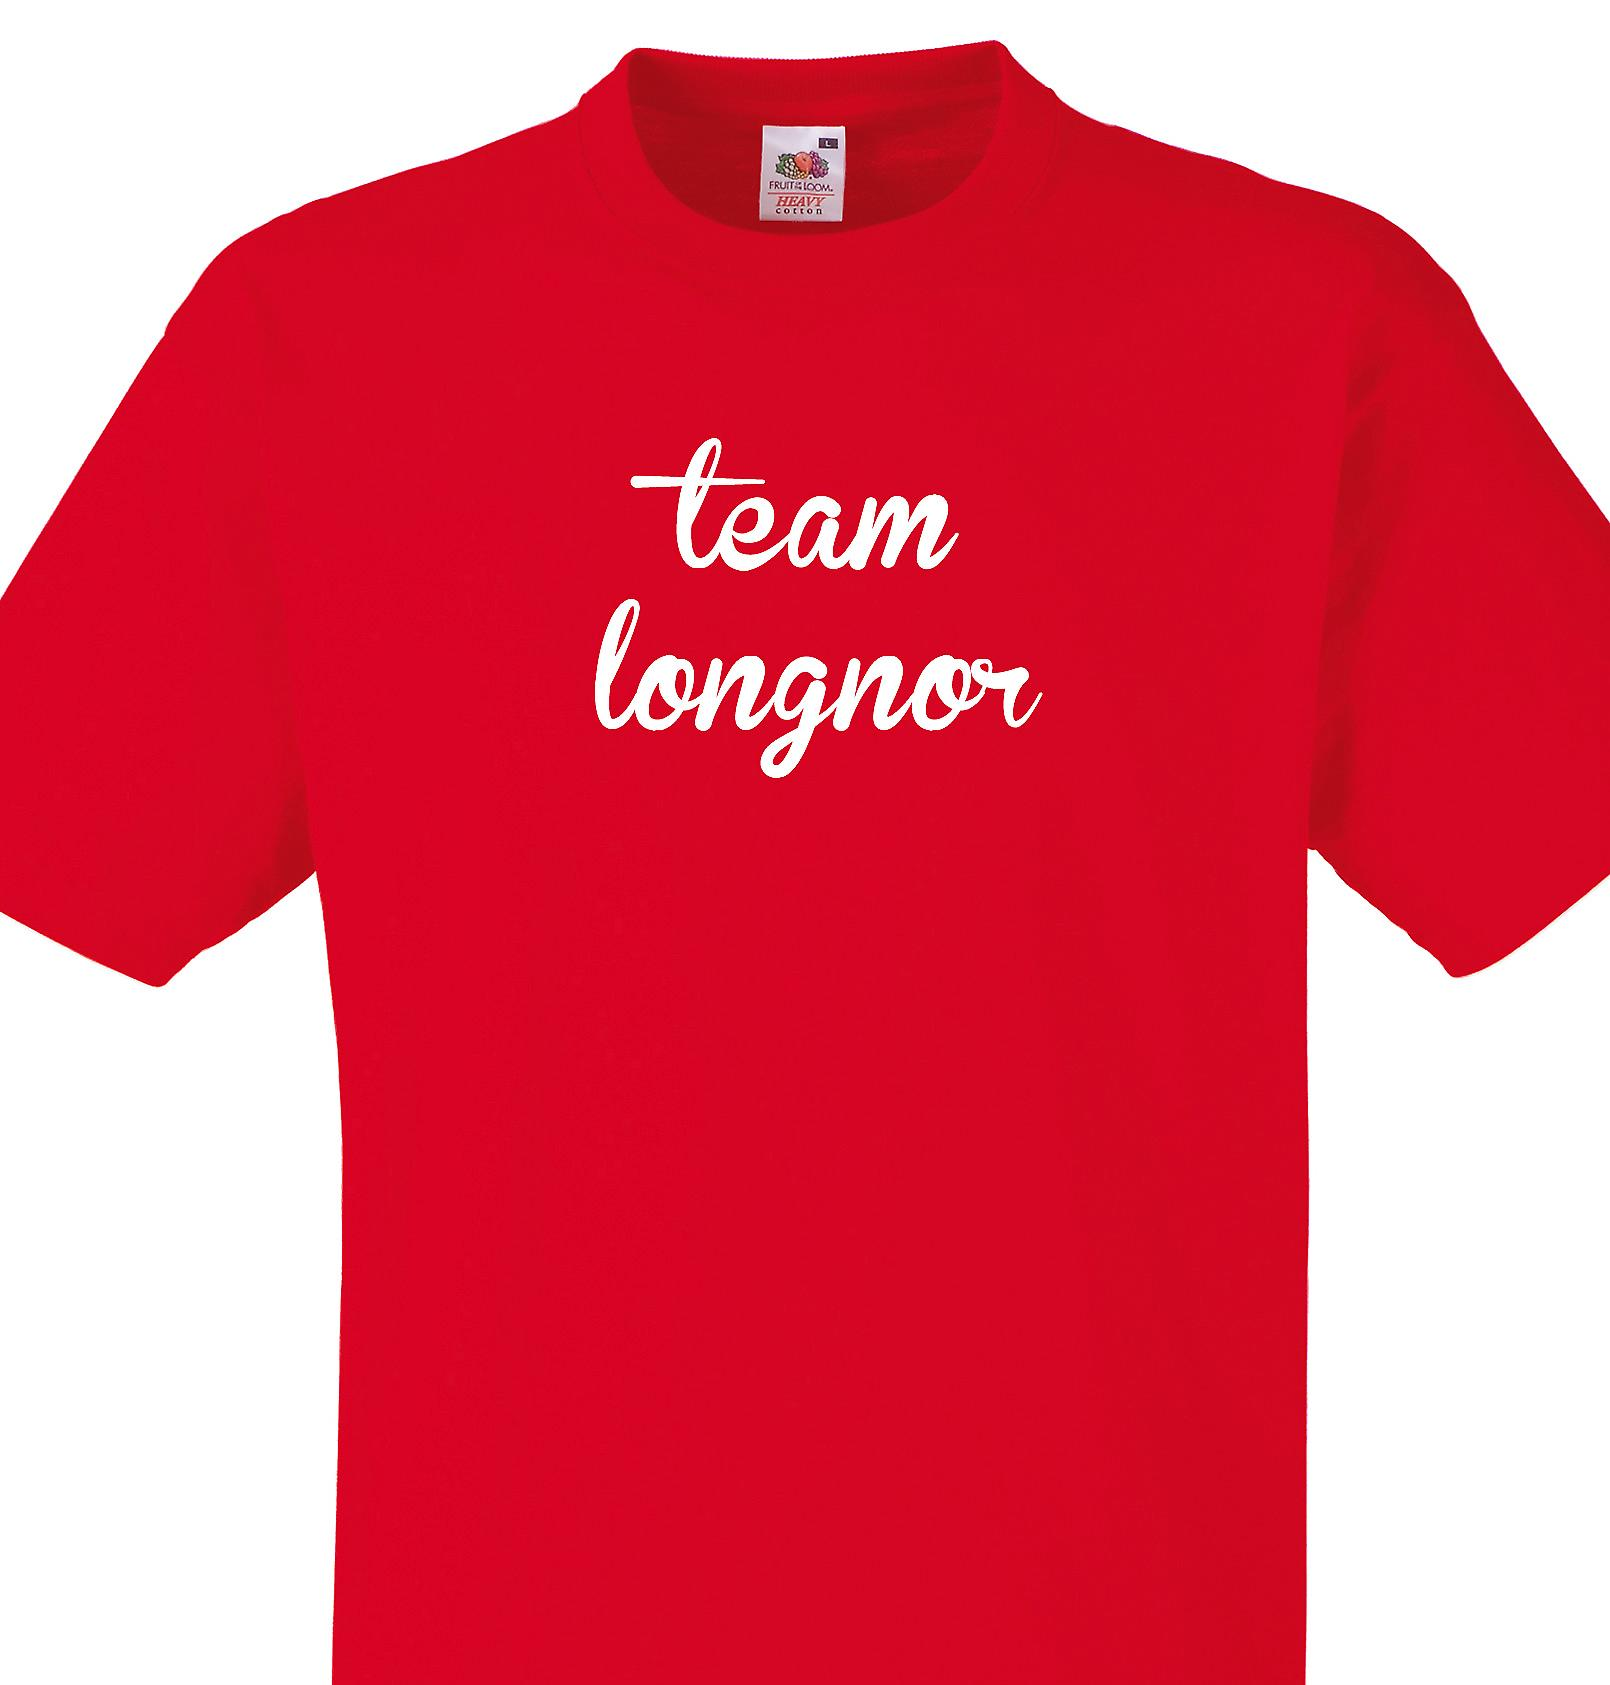 Team Longnor Red T shirt